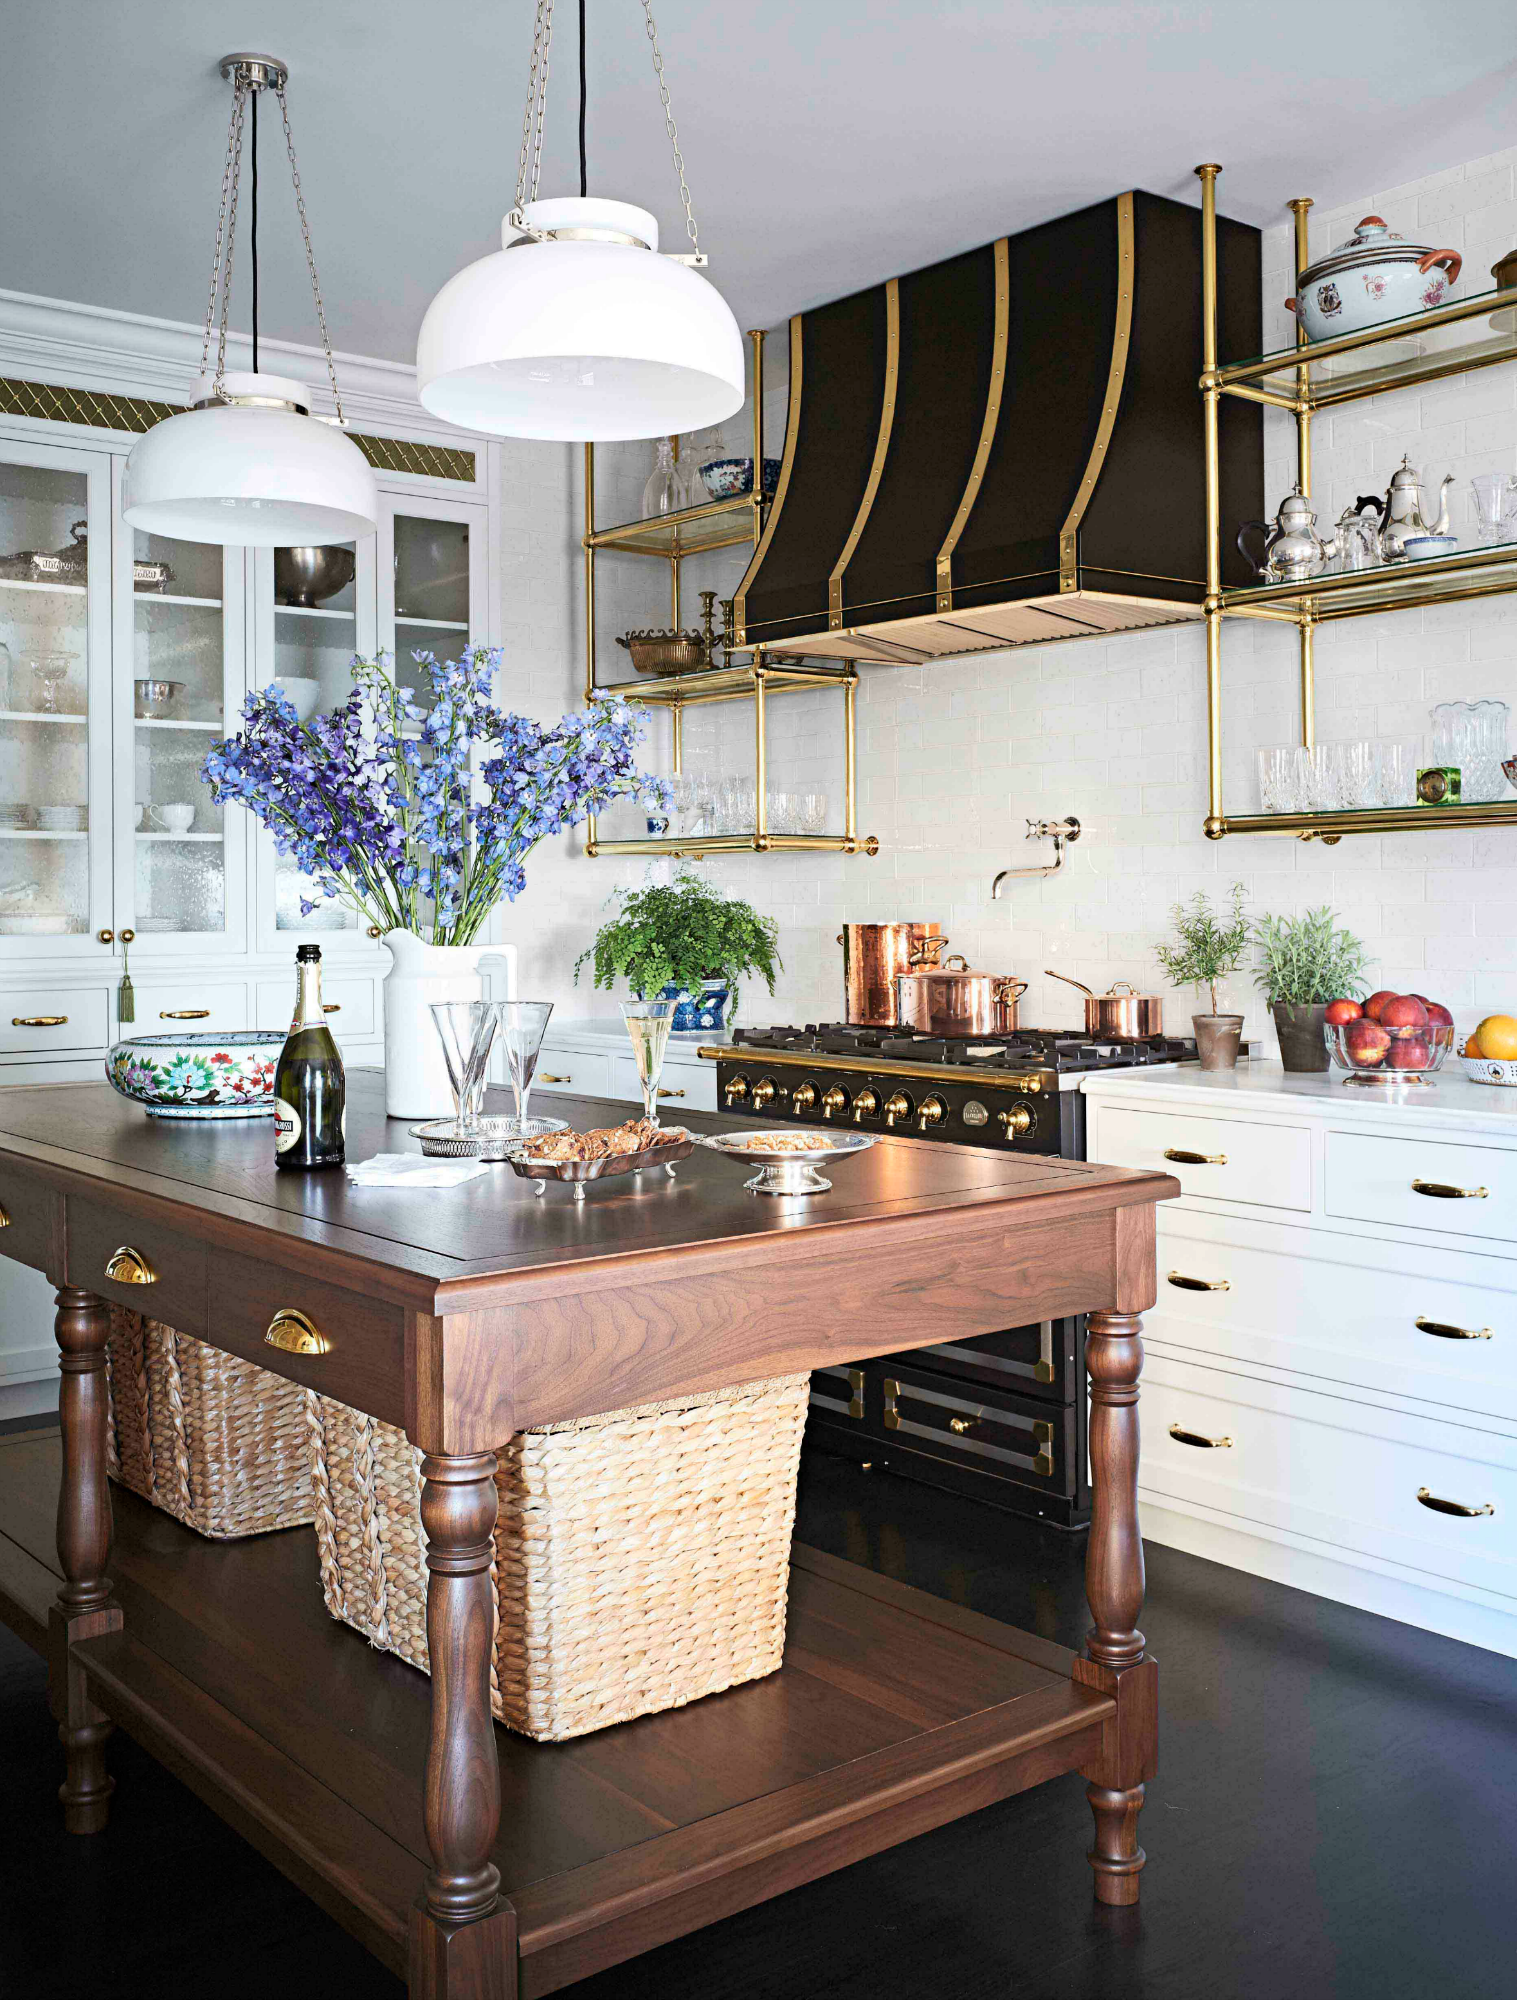 22 Jaw Dropping Small Kitchen Designs: This Chicago Apartment's Before And After Transformation